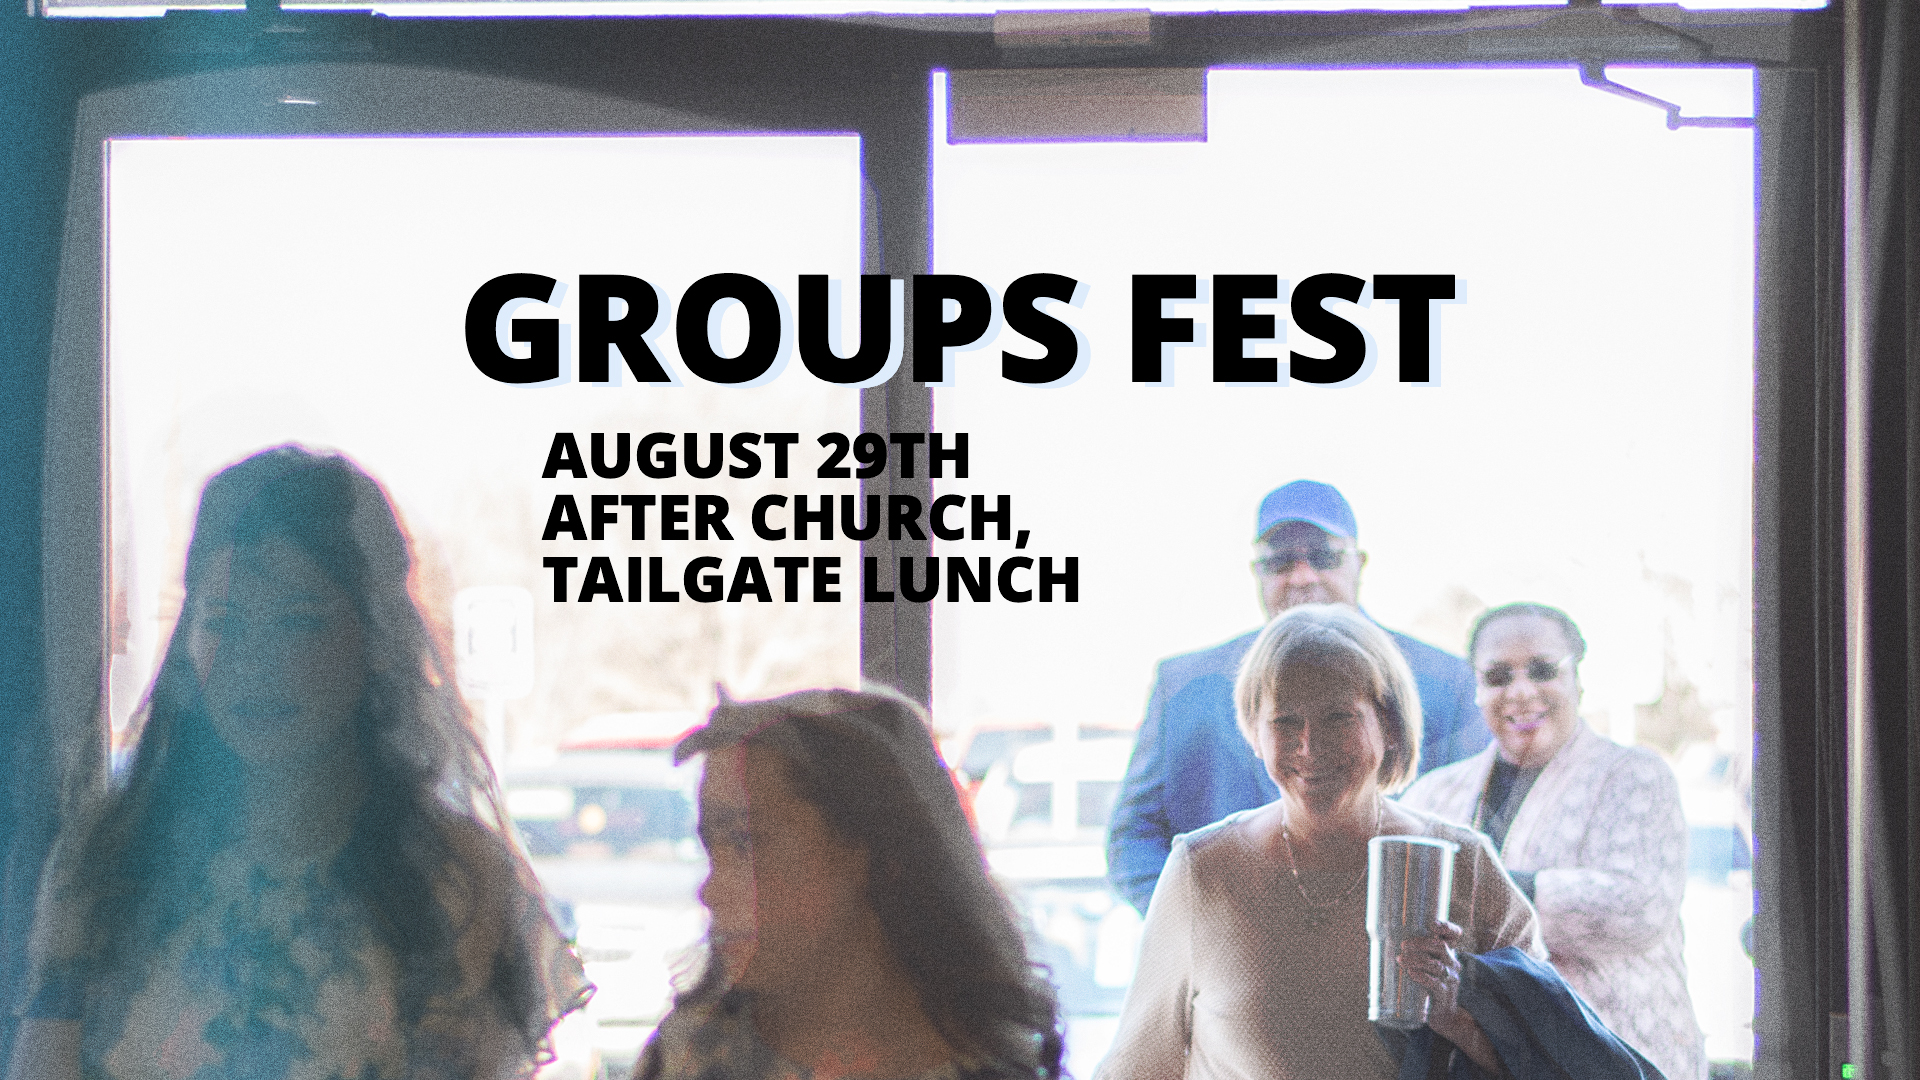 church groups fest at Messiah's House church on August 29, 2021 after church